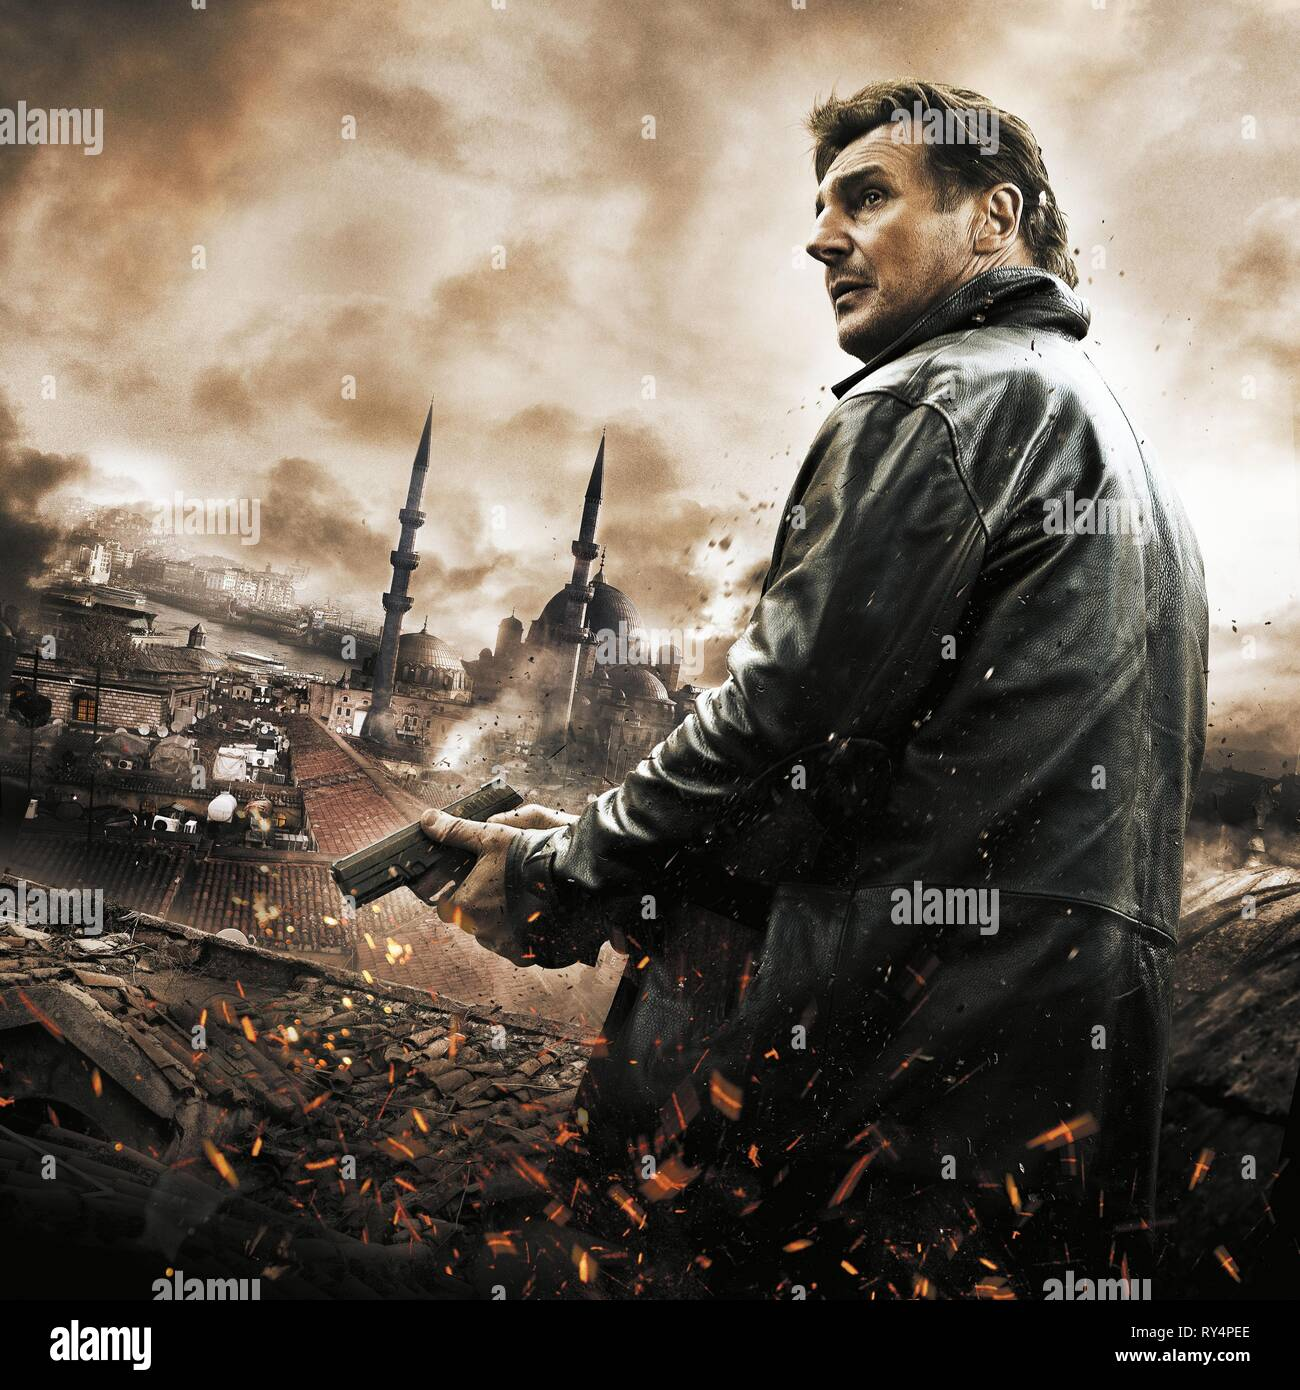 Liam Neeson Taken 2 High Resolution Stock Photography And Images Alamy